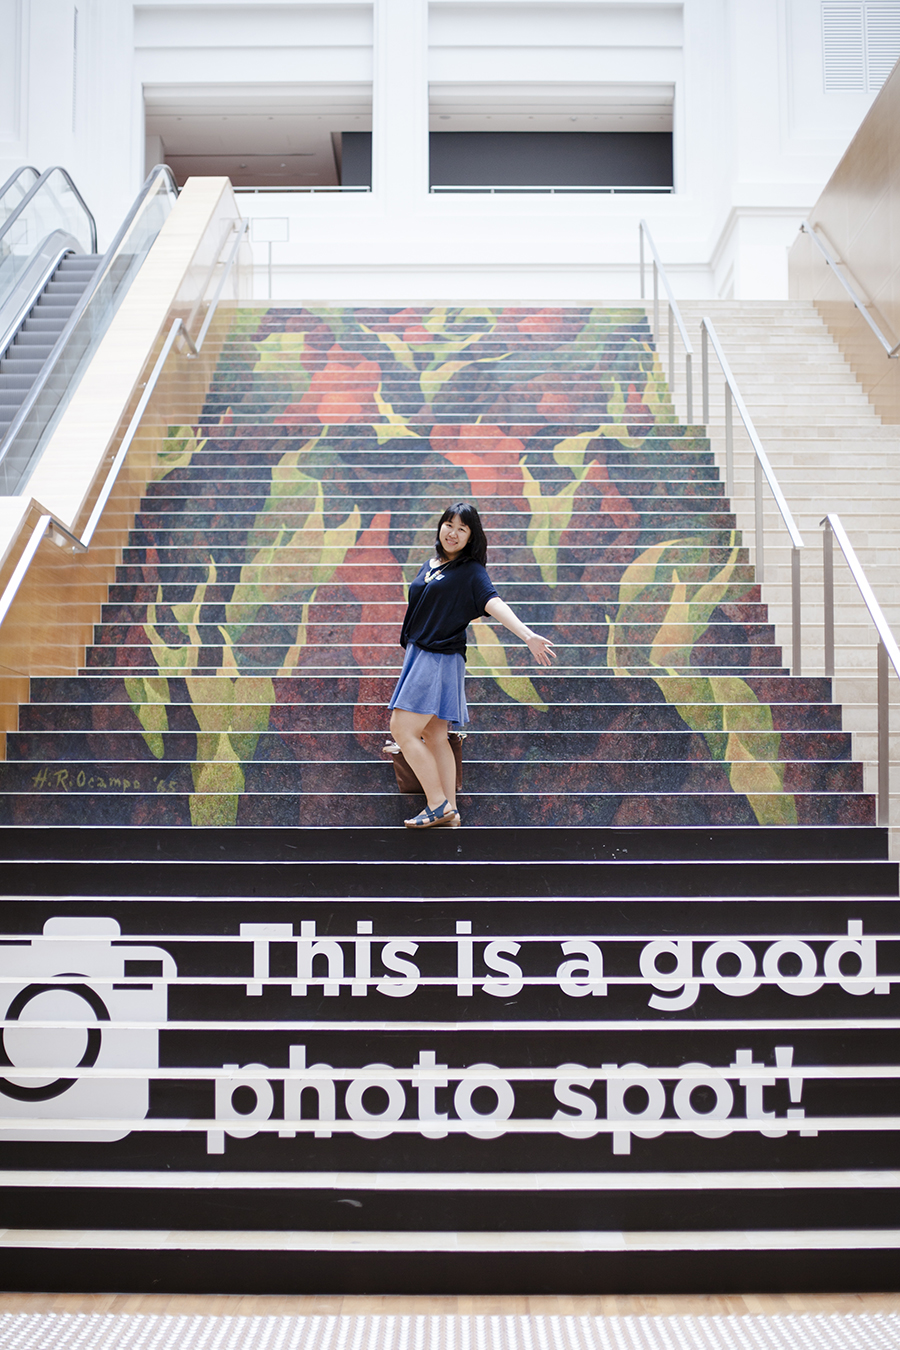 National Gallery Singapore: This is a good photo spot decal of Dancing Mutants by Hernando R. Ocampo, Oil on canvas, 1965.